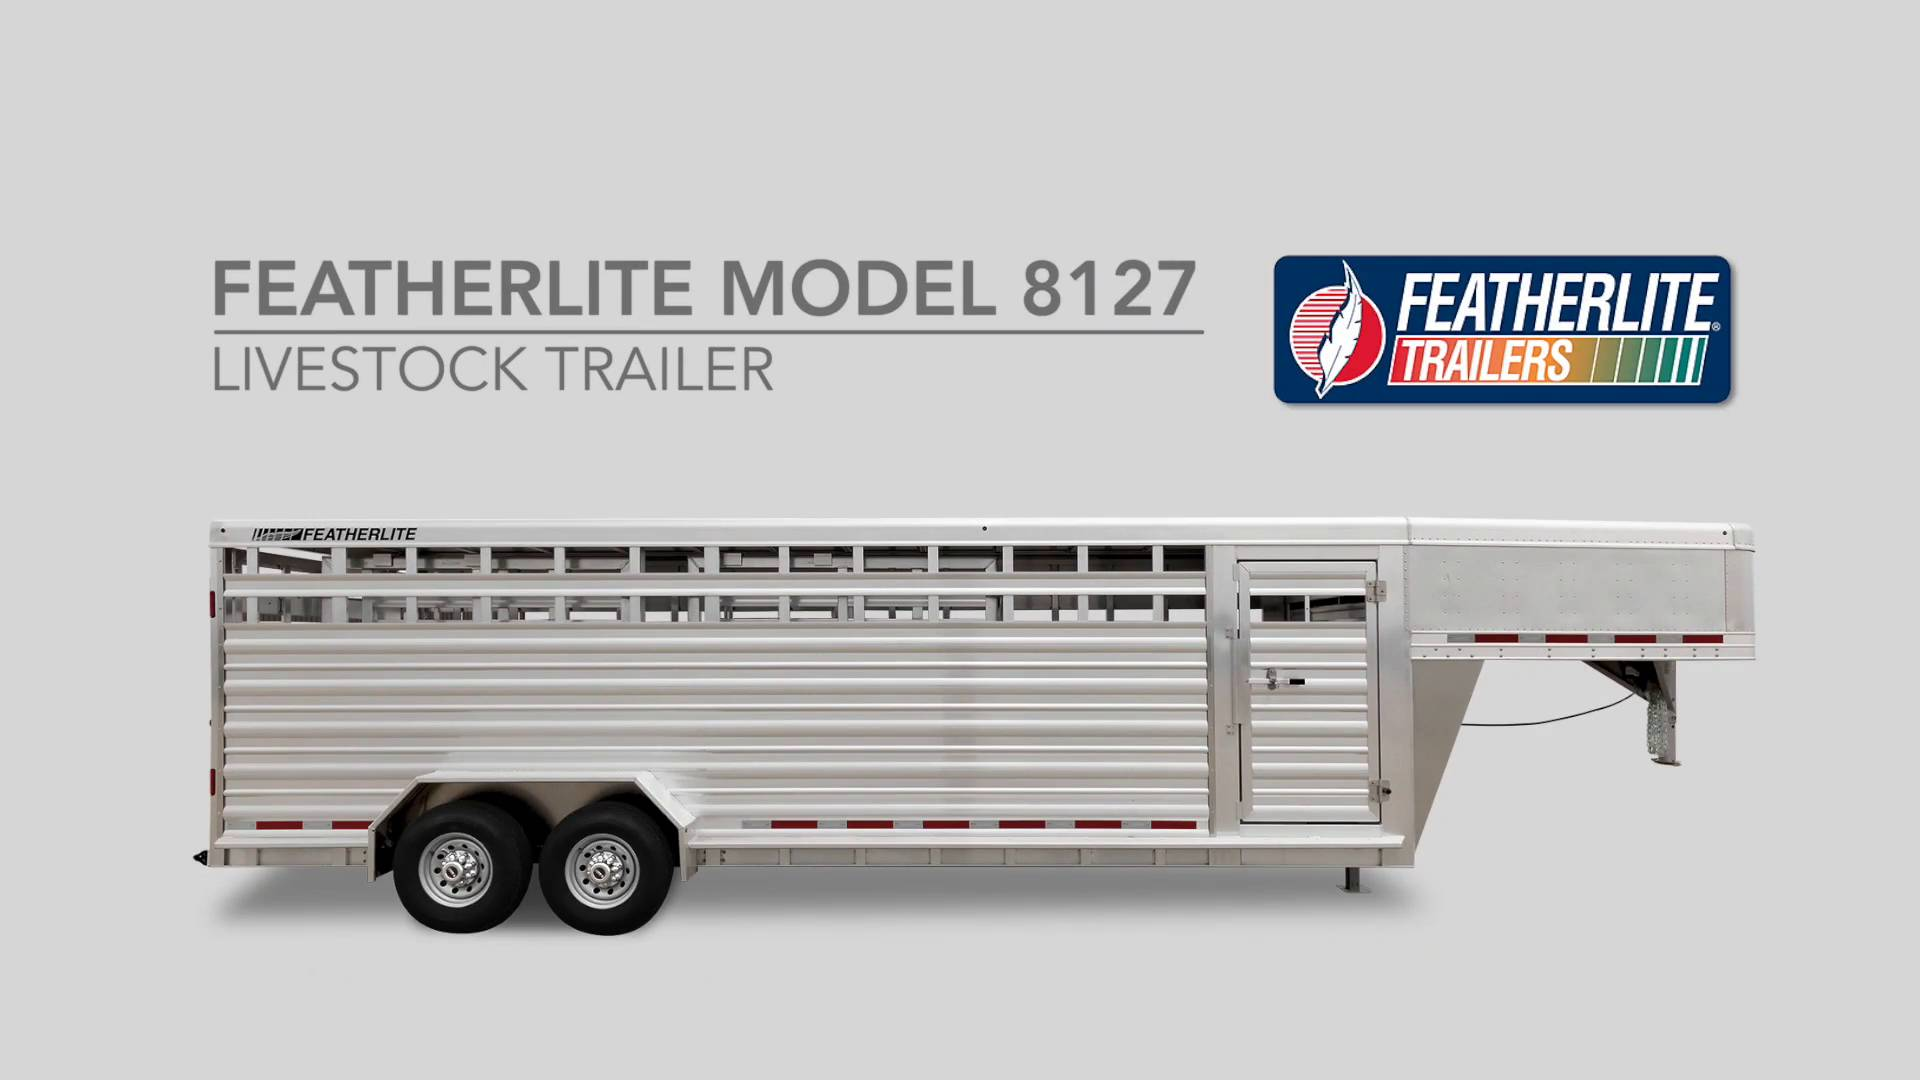 Astonishing Featherlite Trailer Wiring Diagram Contemporary - Best ...